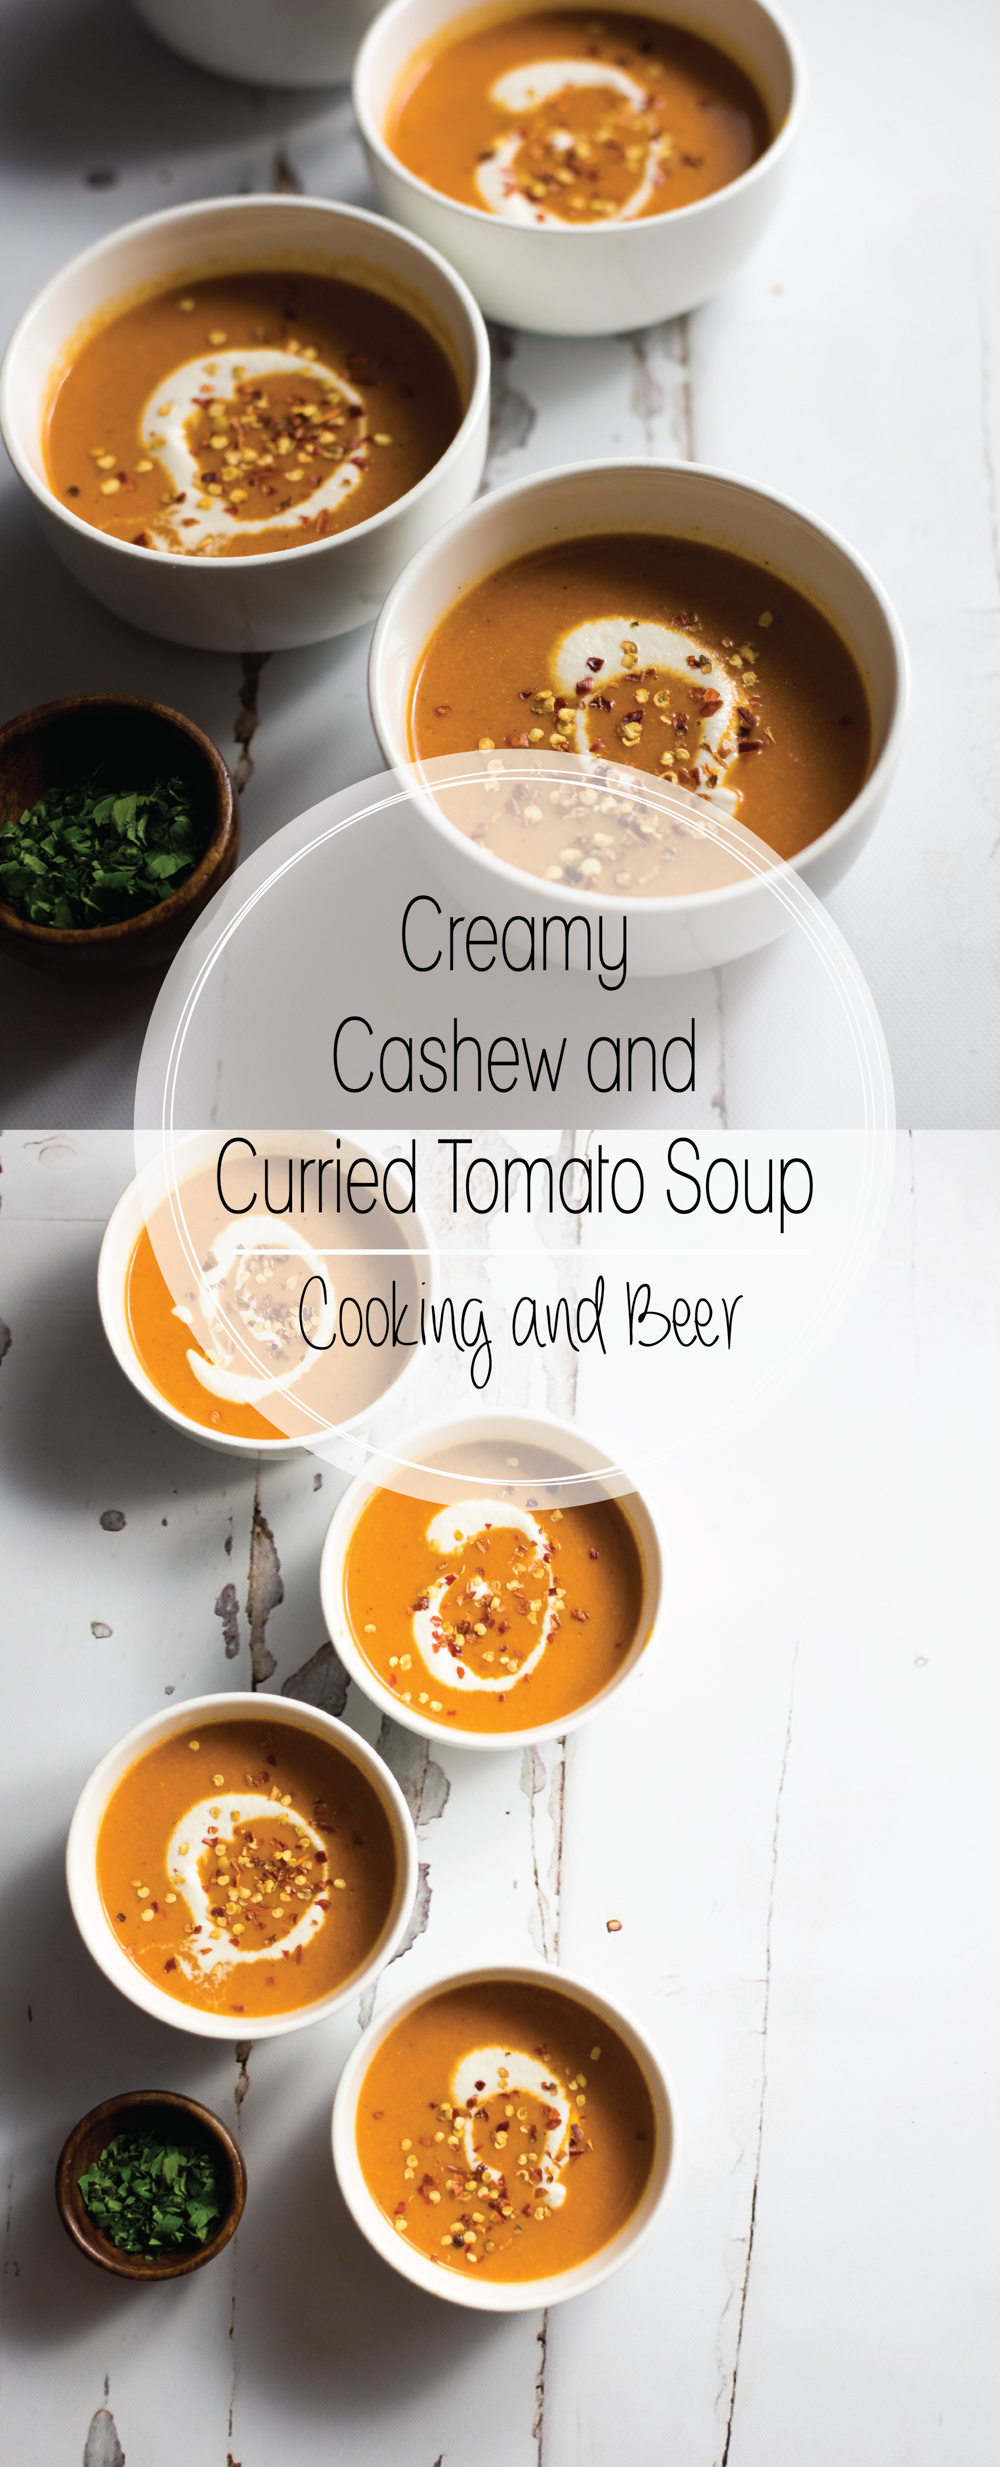 Creamy Cashew and Curried Tomato Soup is a fun variation of classic creamy tomato soup. Serve it with a grilled cheese sandwich and get excited for dinner!